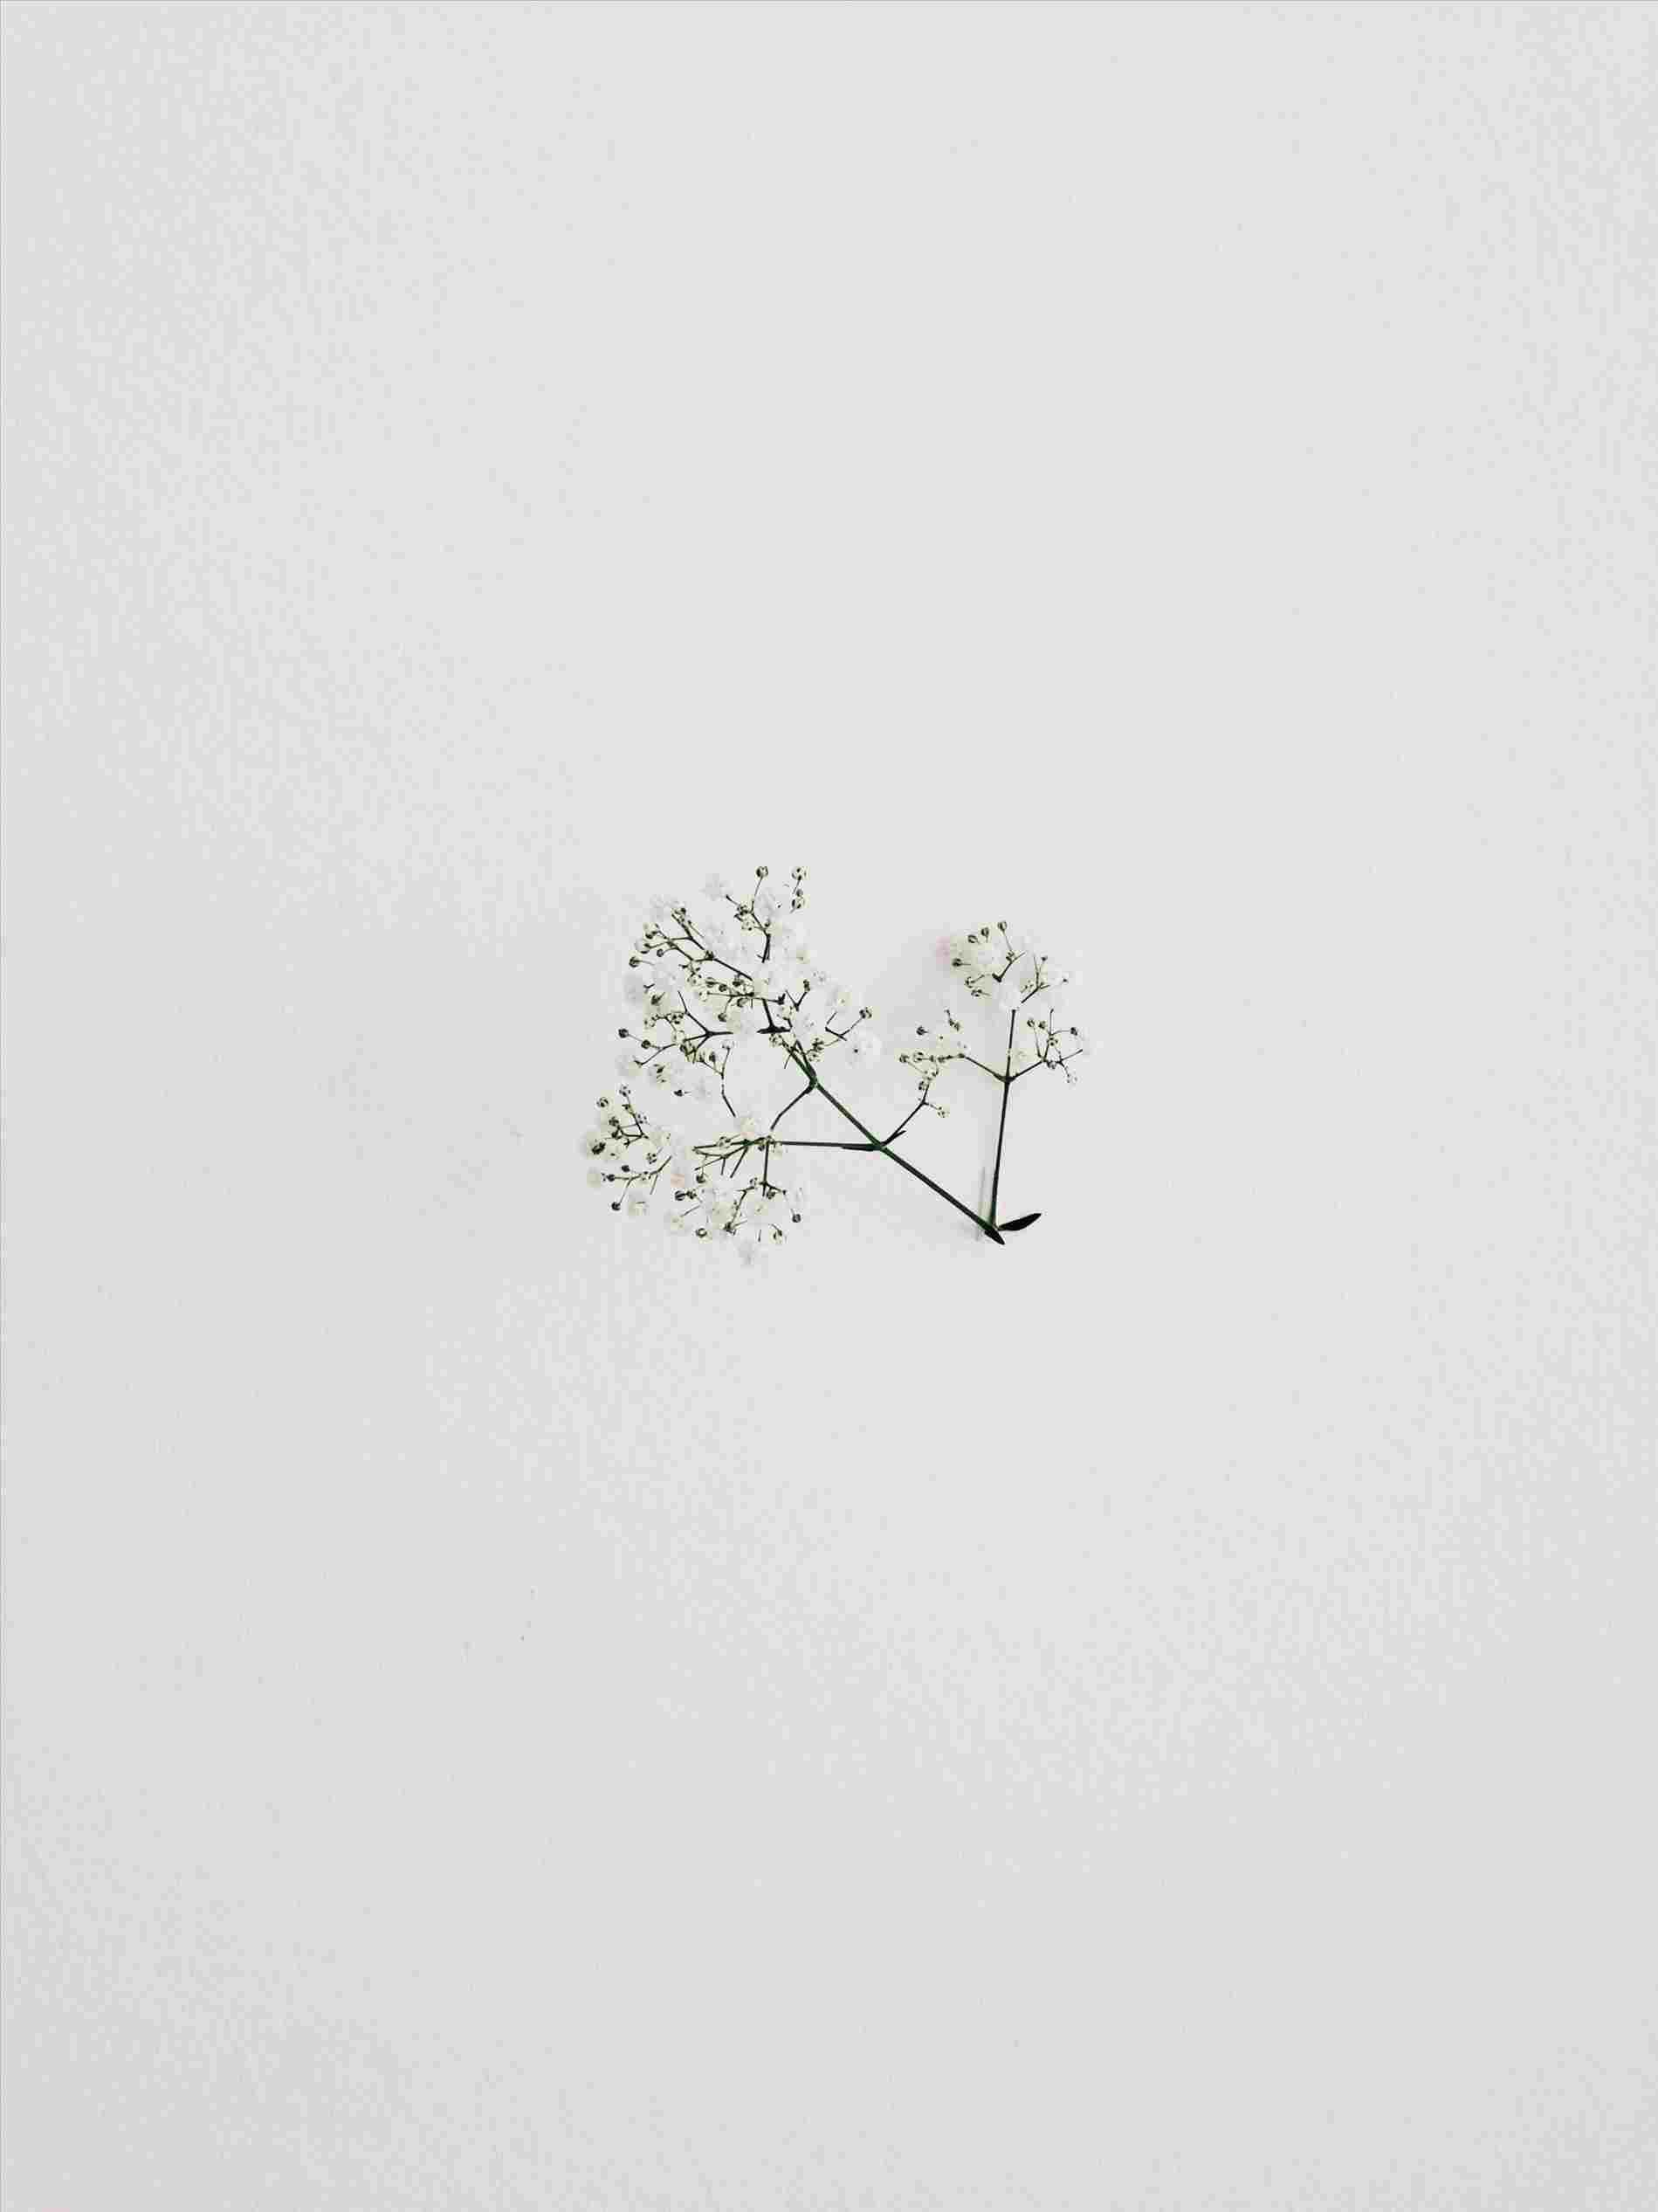 Minimalist Plant Drawing Wallpapers Top Free Minimalist Plant Drawing Backgrounds Wallpaperaccess